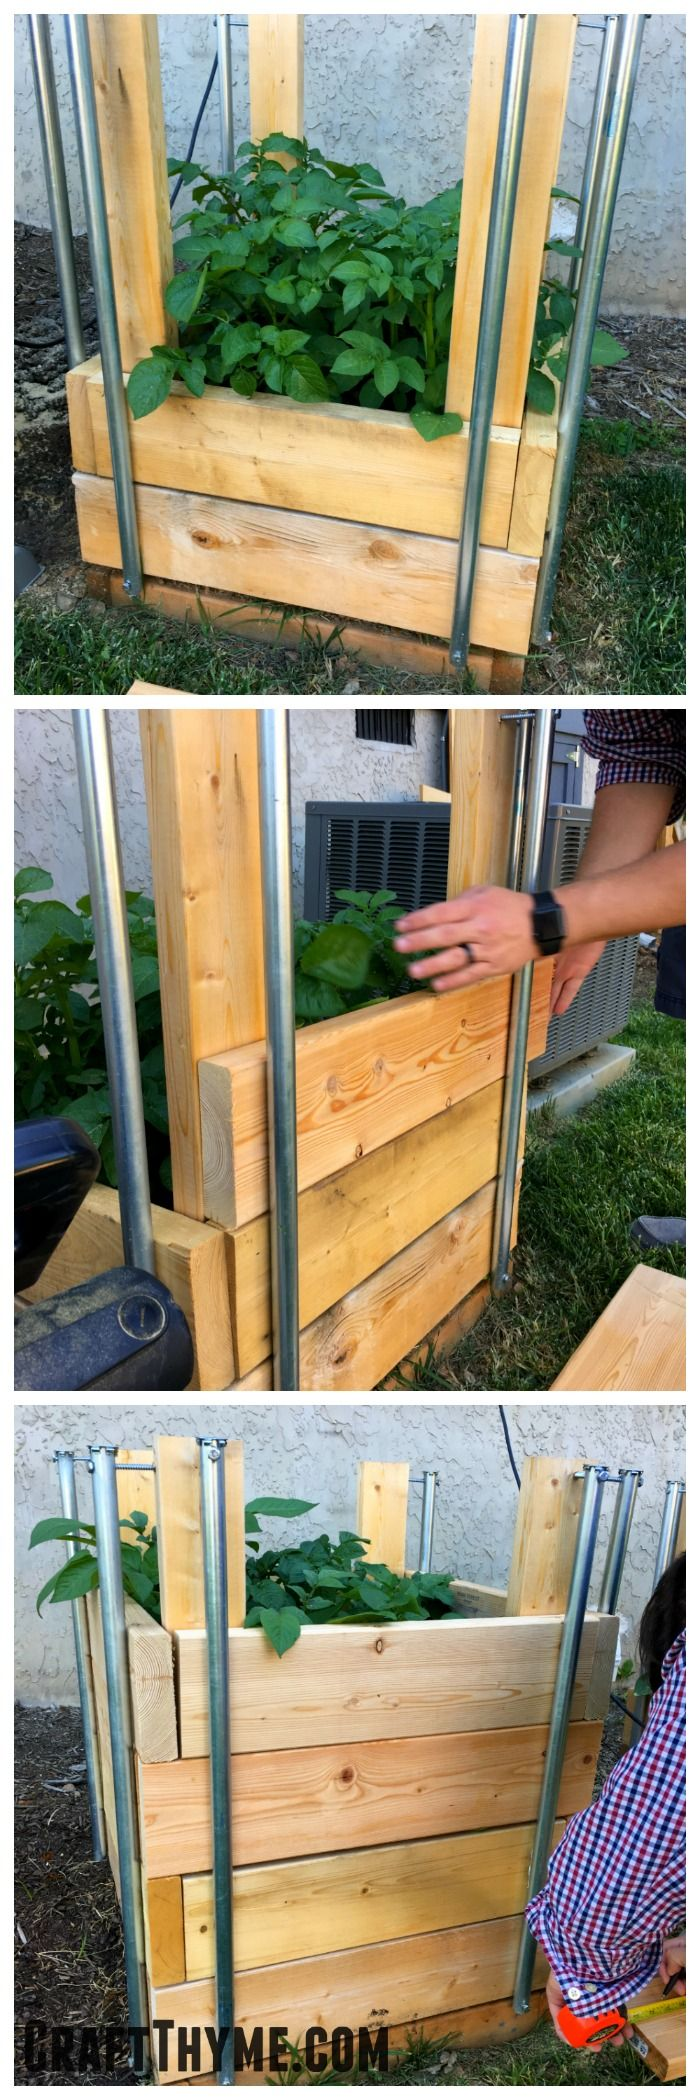 Best 25 vegetable boxes ideas on pinterest gardening home short on garden space then a potato tower or potato box may be just what you need and we can show you just how to build a grow tower baanklon Gallery